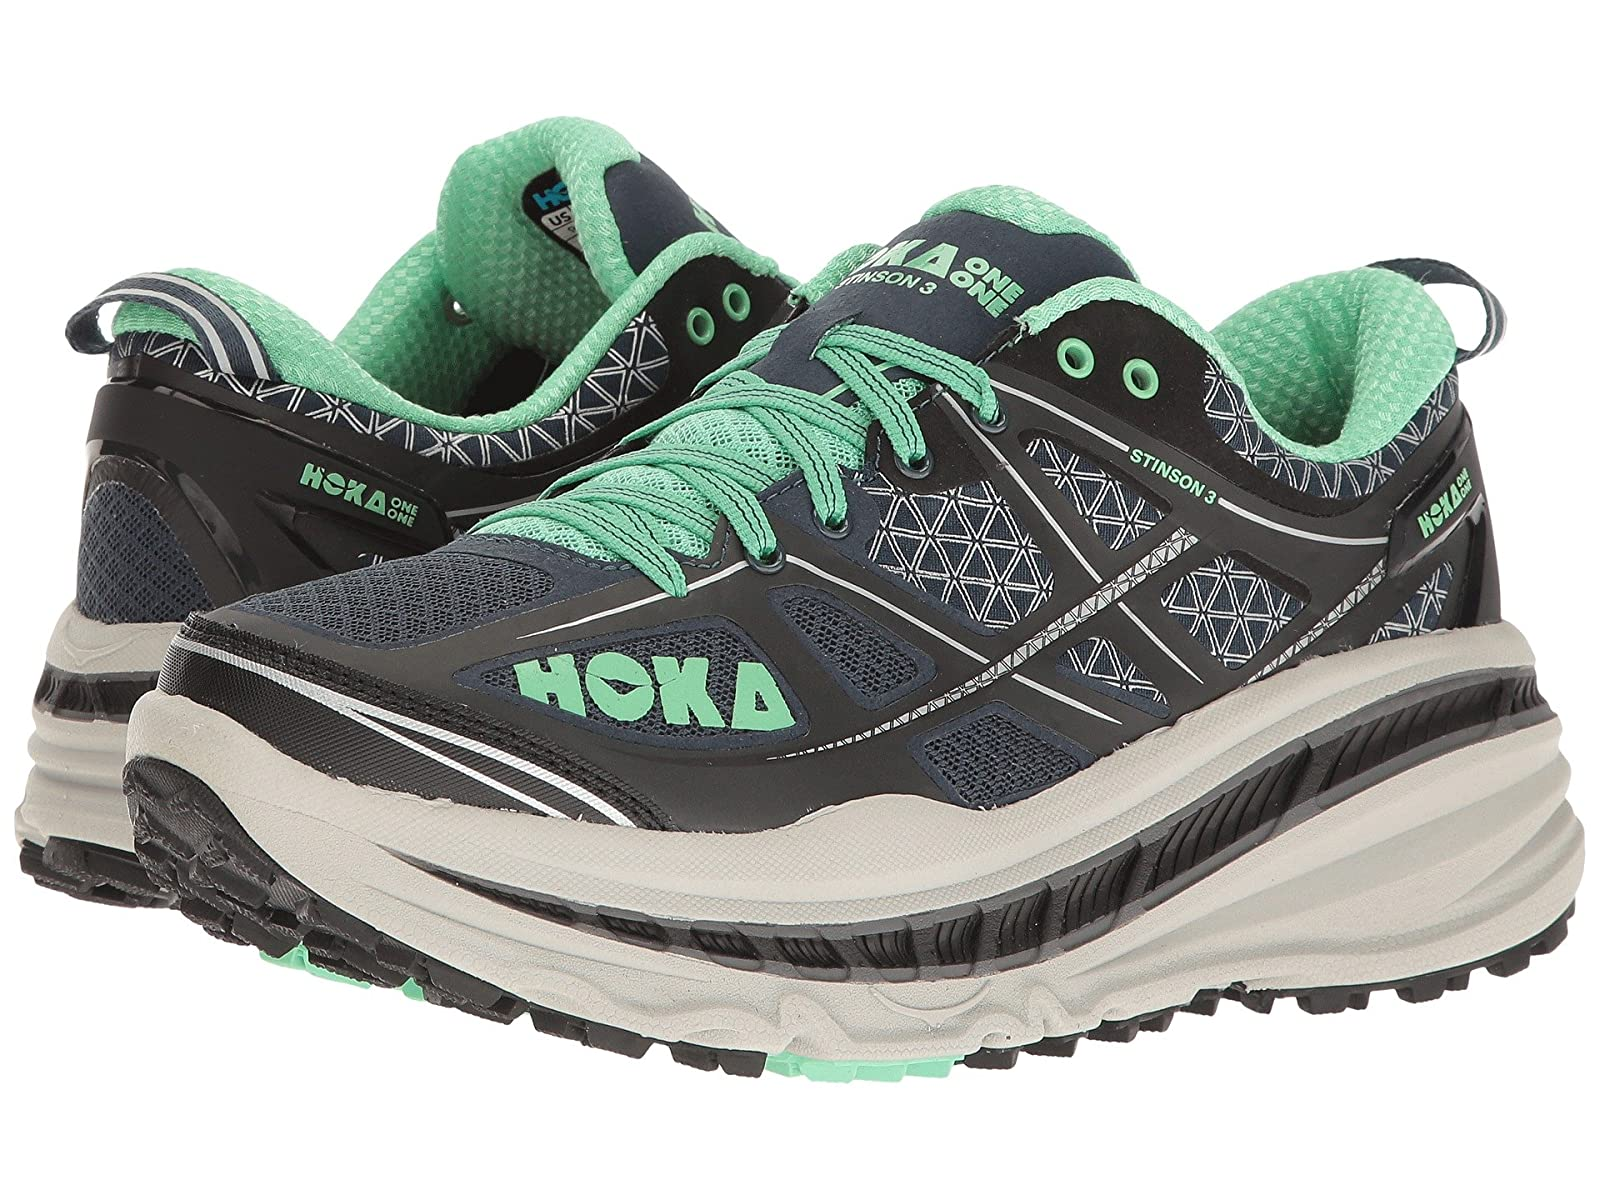 Hoka One One Stinson 3 ATRCheap and distinctive eye-catching shoes